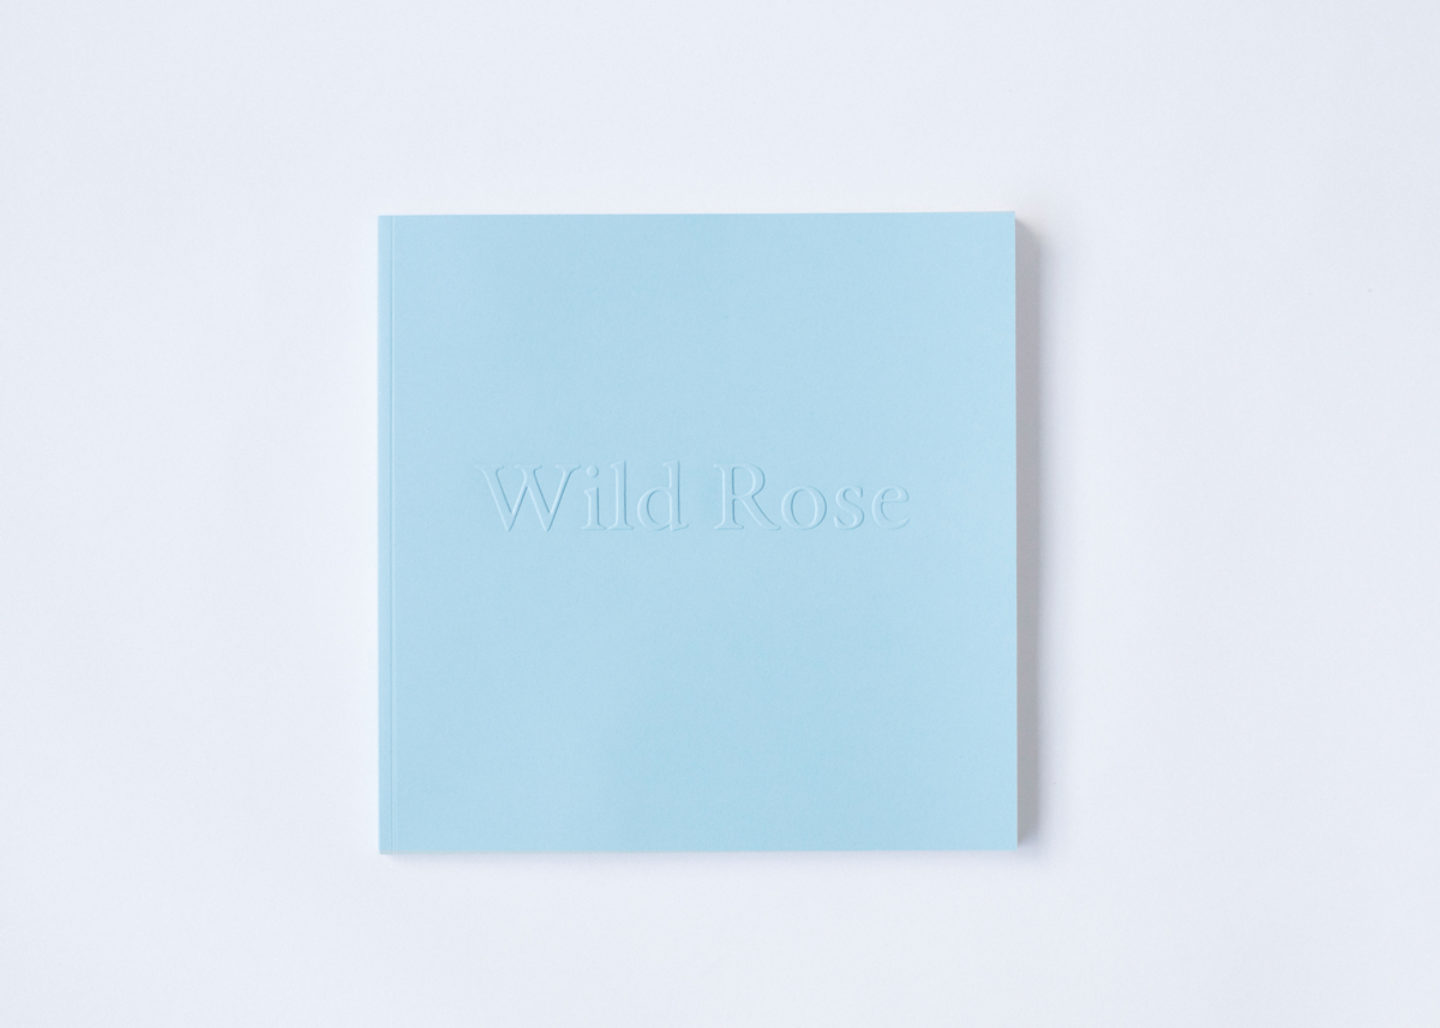 IGNANT-Print-Landon-Speers-Wild-Rose-Book-1